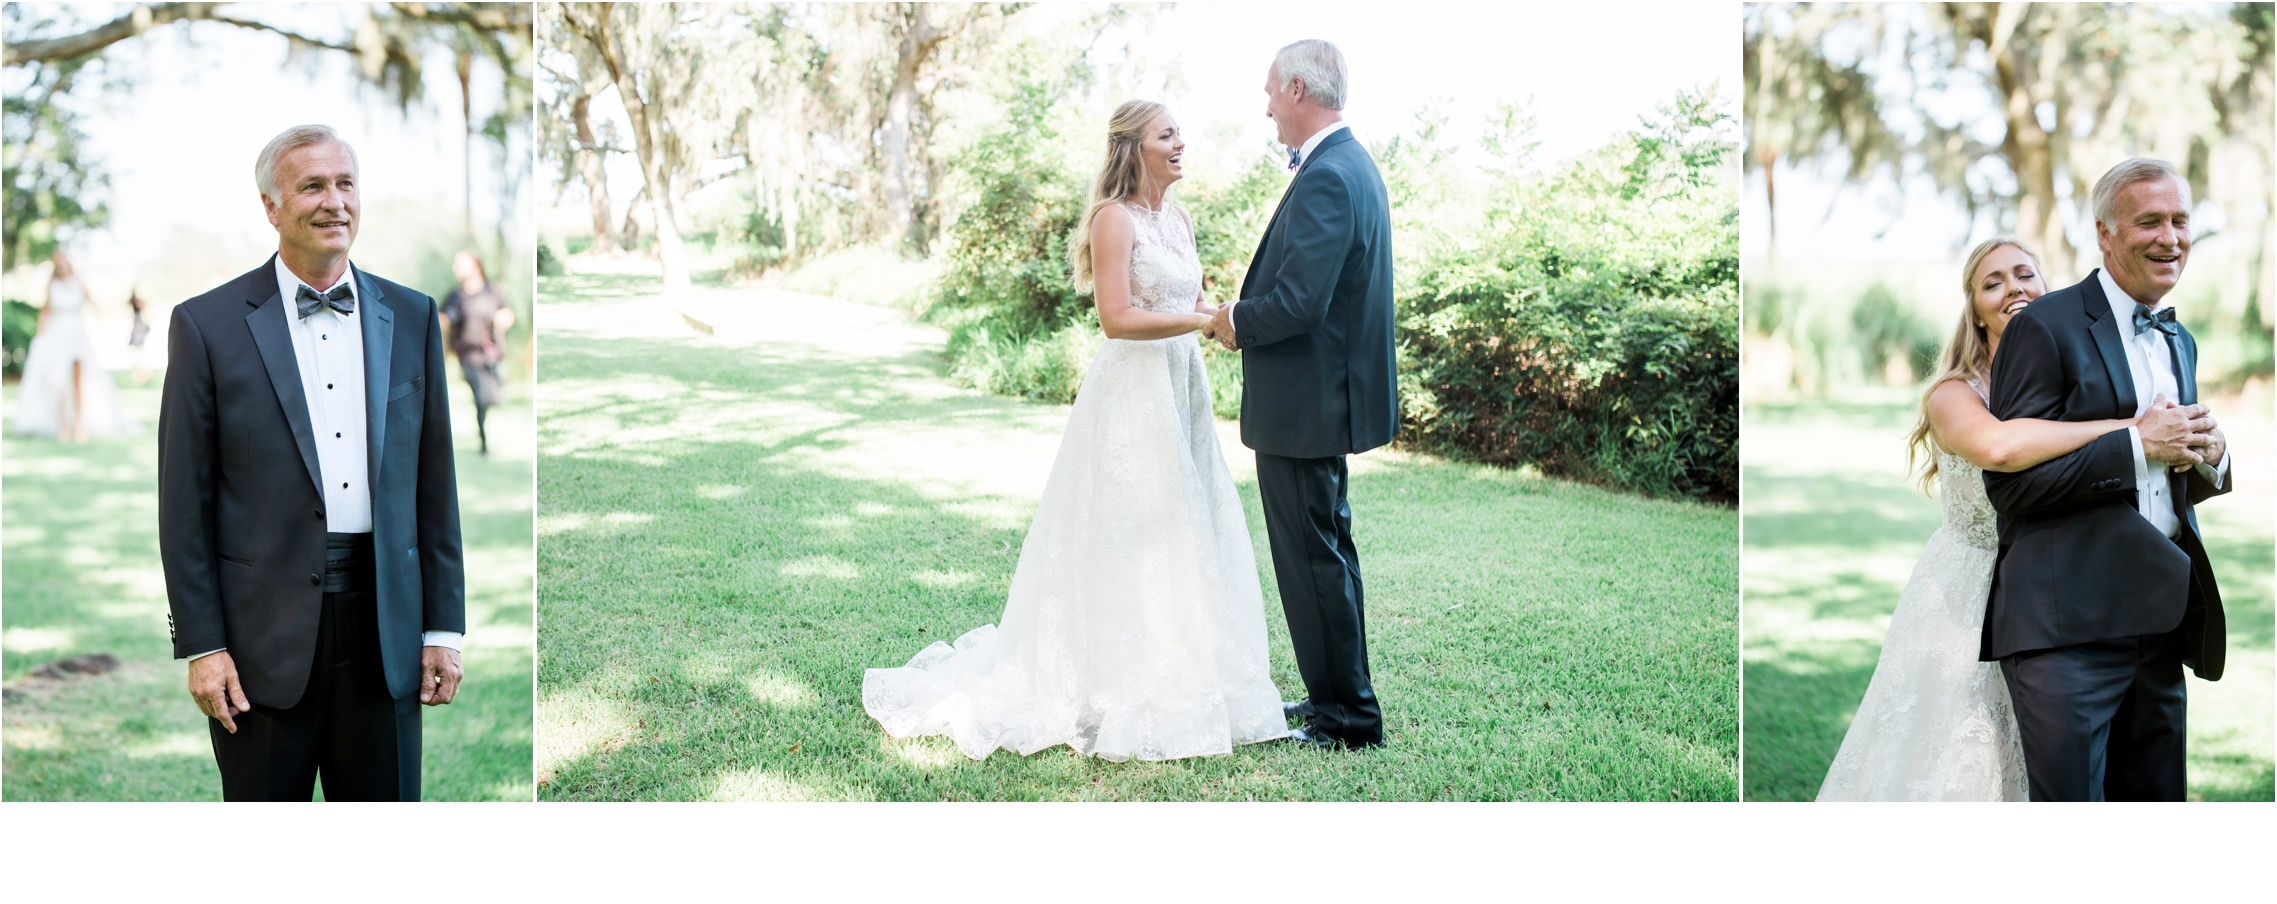 Rainey_Gregg_Photography_St._Simons_Island_Georgia_California_Wedding_Portrait_Photography_0058.jpg